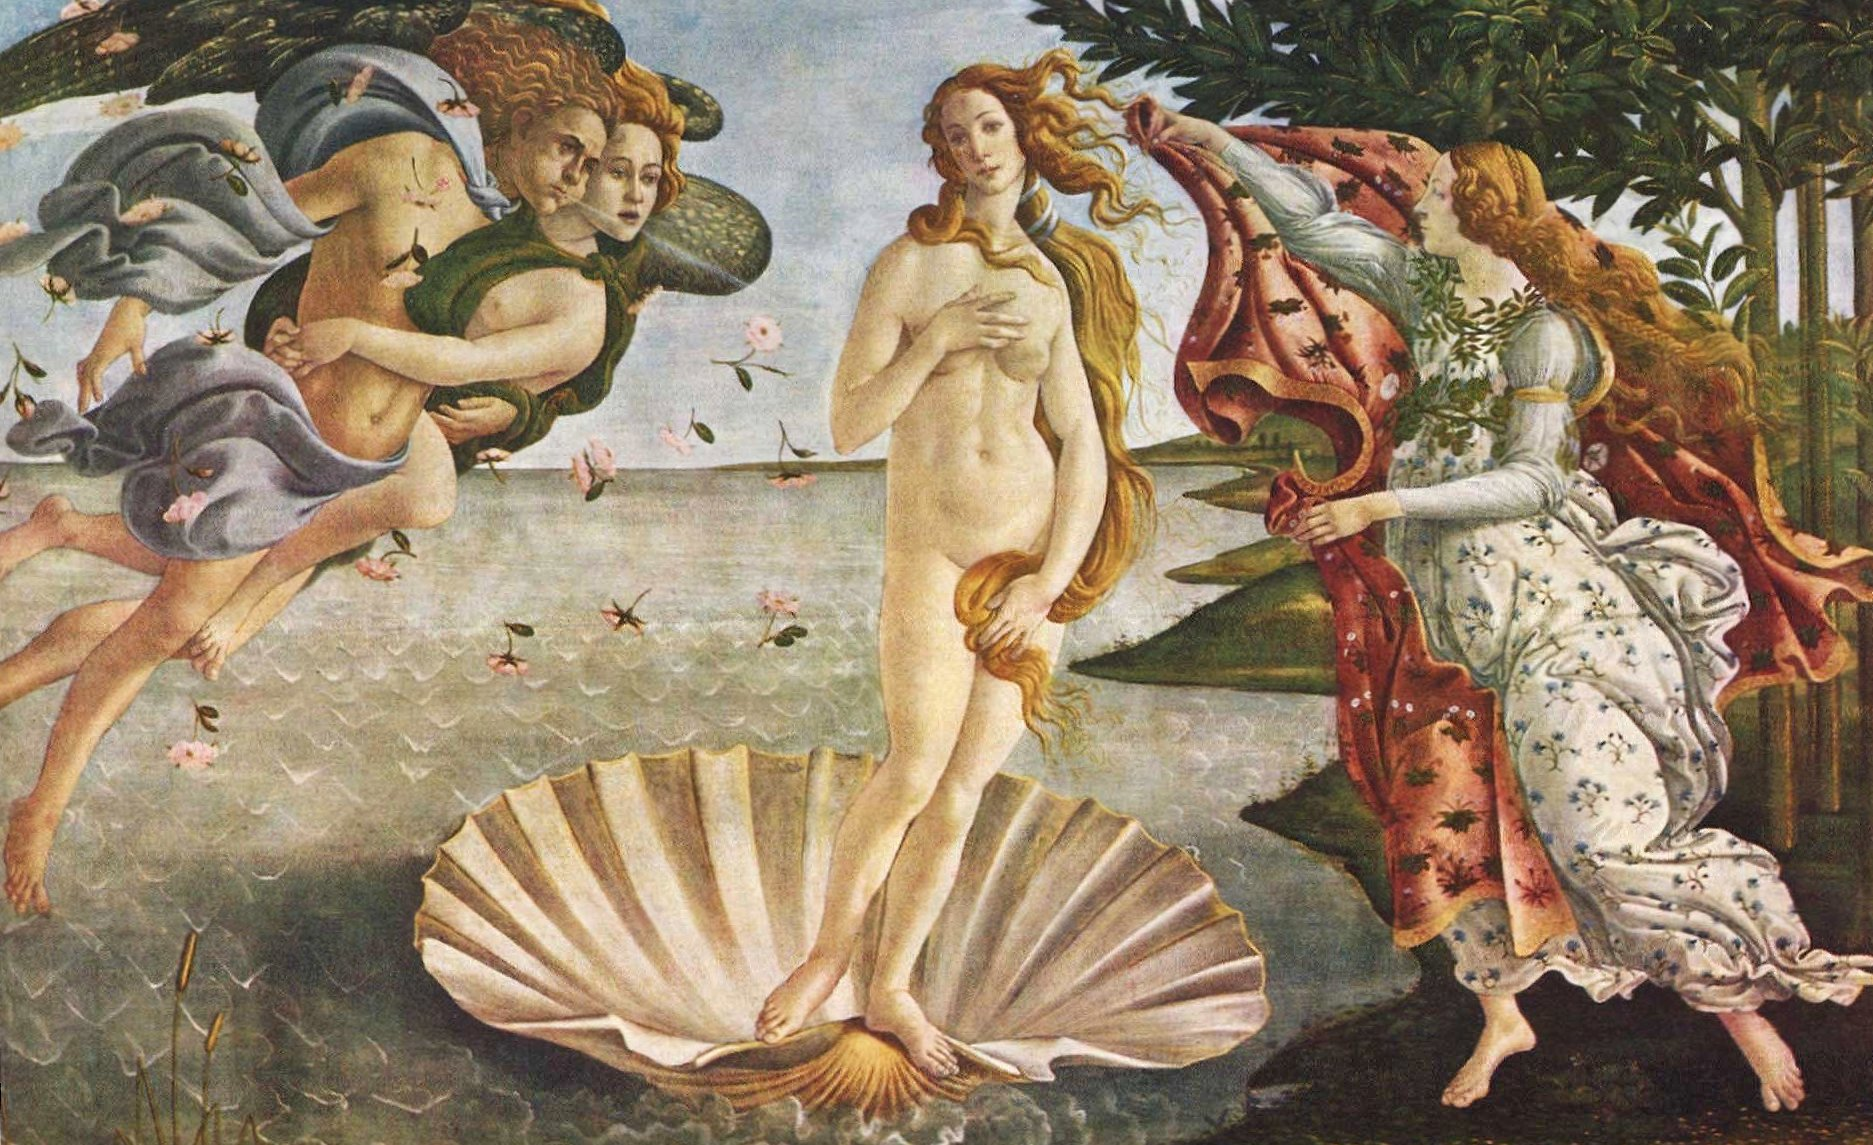 Sandro botticelli the birth of venus wallpapers HD quality